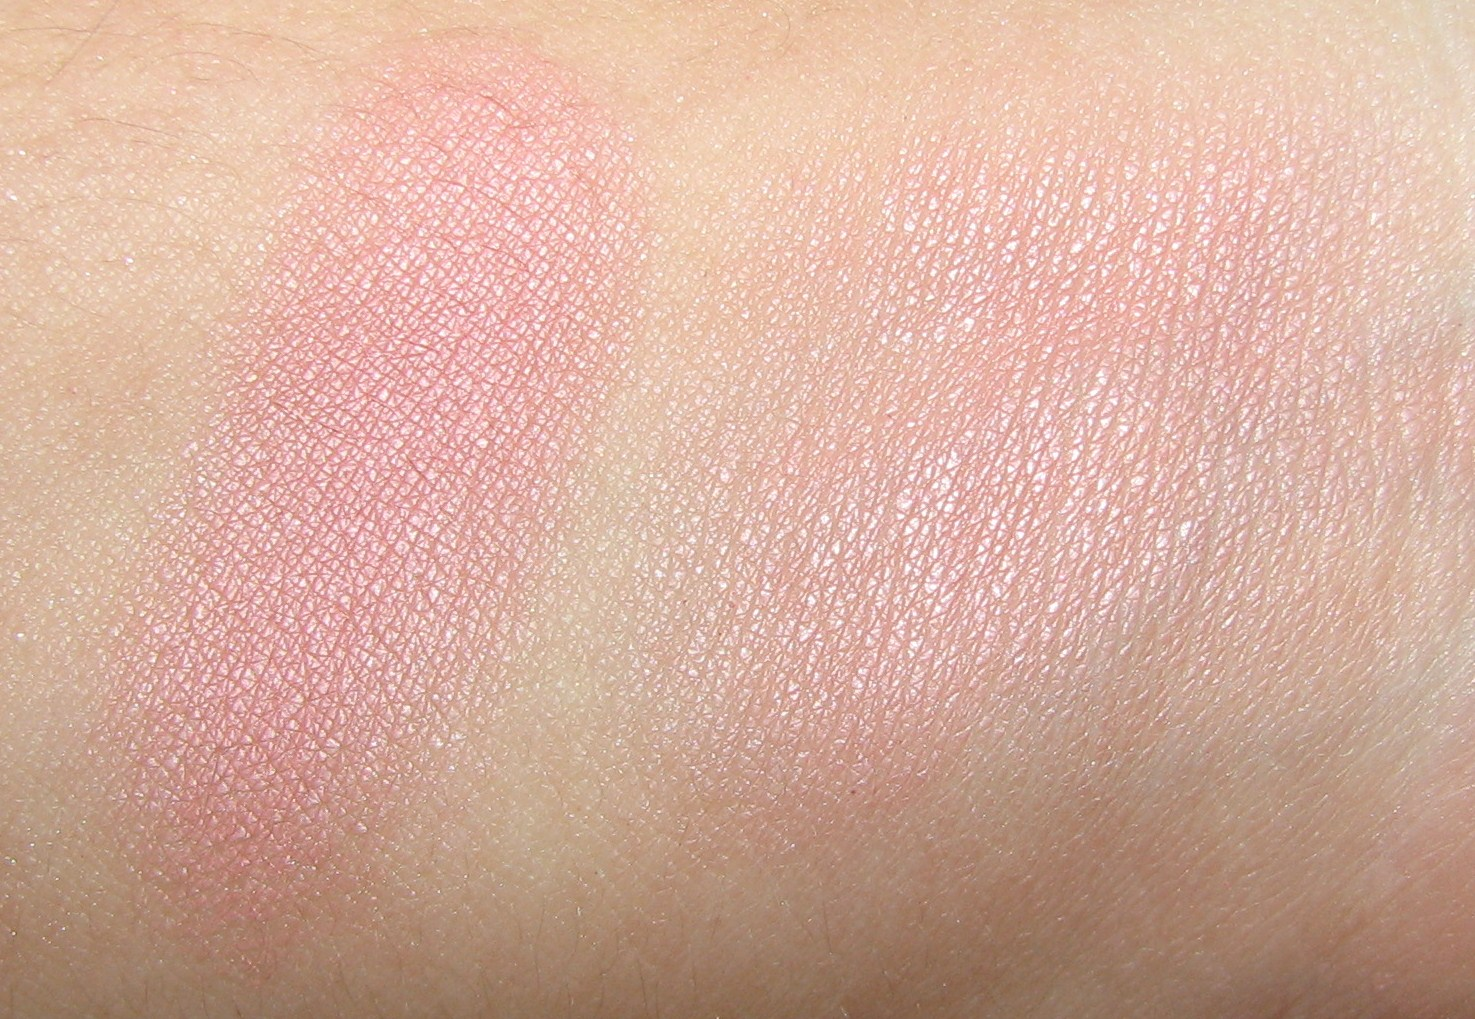 Tarte stunner vs tarte stunner dupe comparison - Stunner Is Described On The Mac Website As A Light Coral Pink You Don T Really See Much Of The Coral Hue On The Heavy Swatch But You Can Notice It More